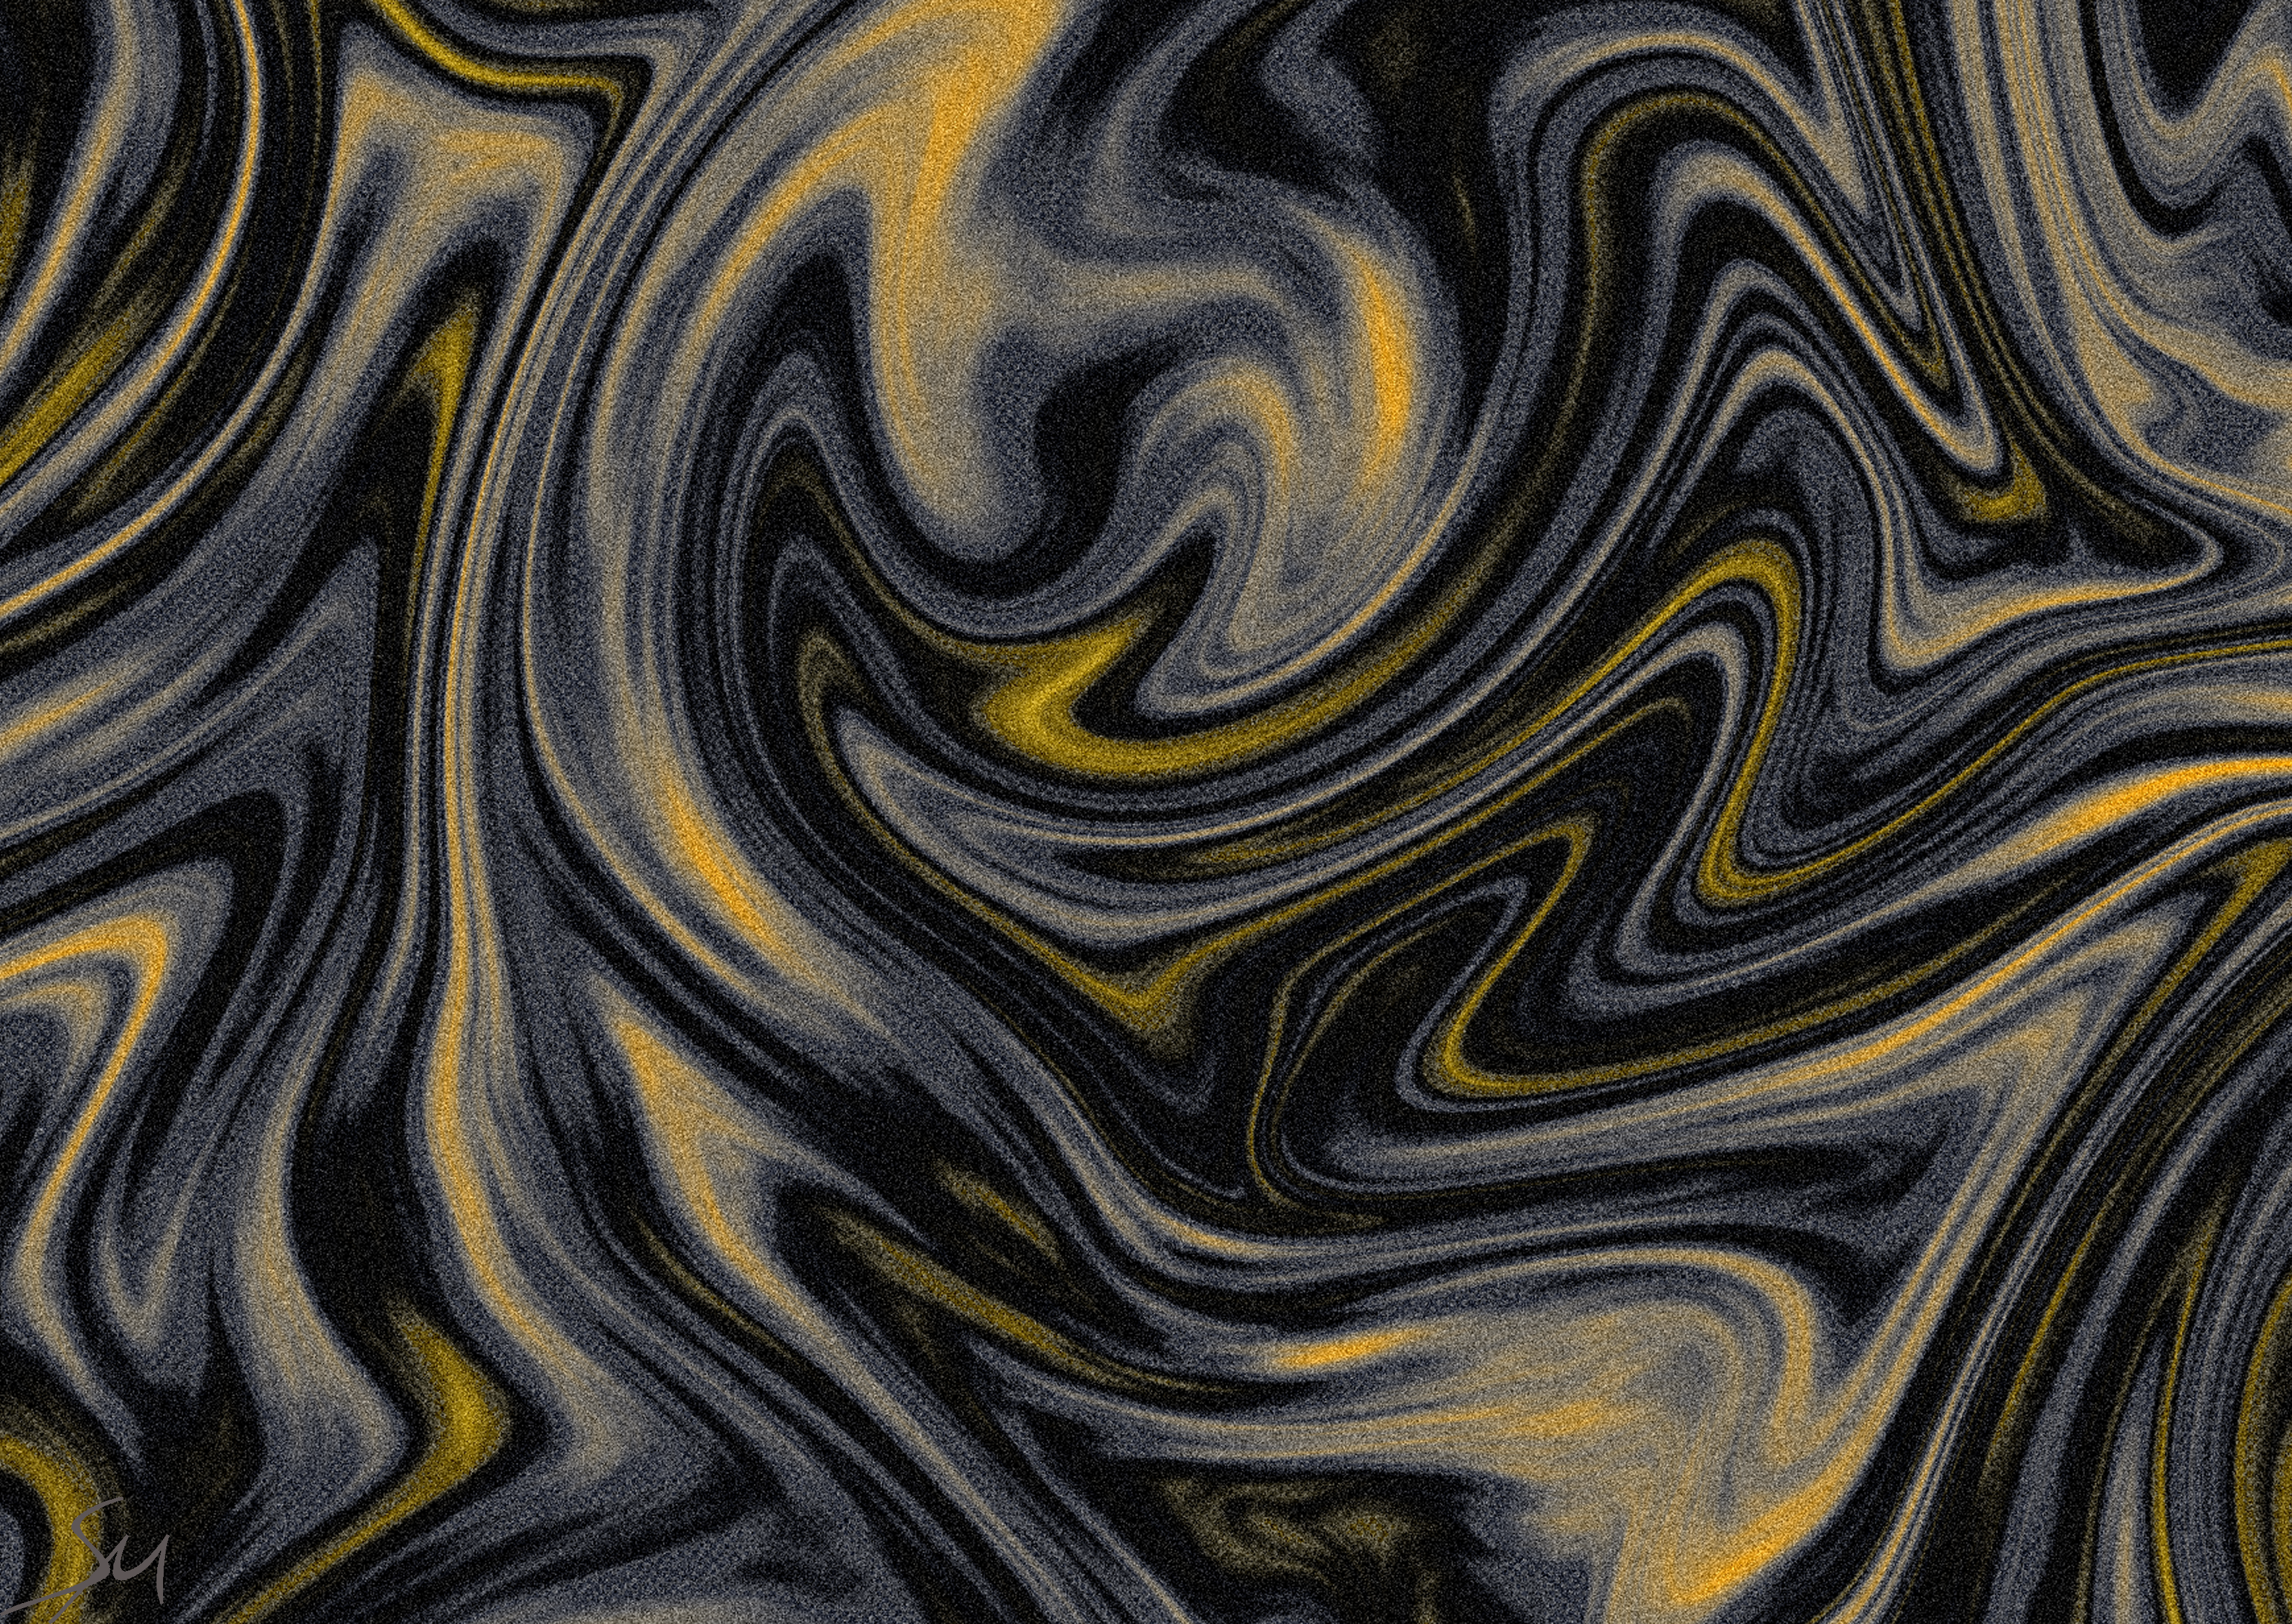 Liquified Clouds 0102